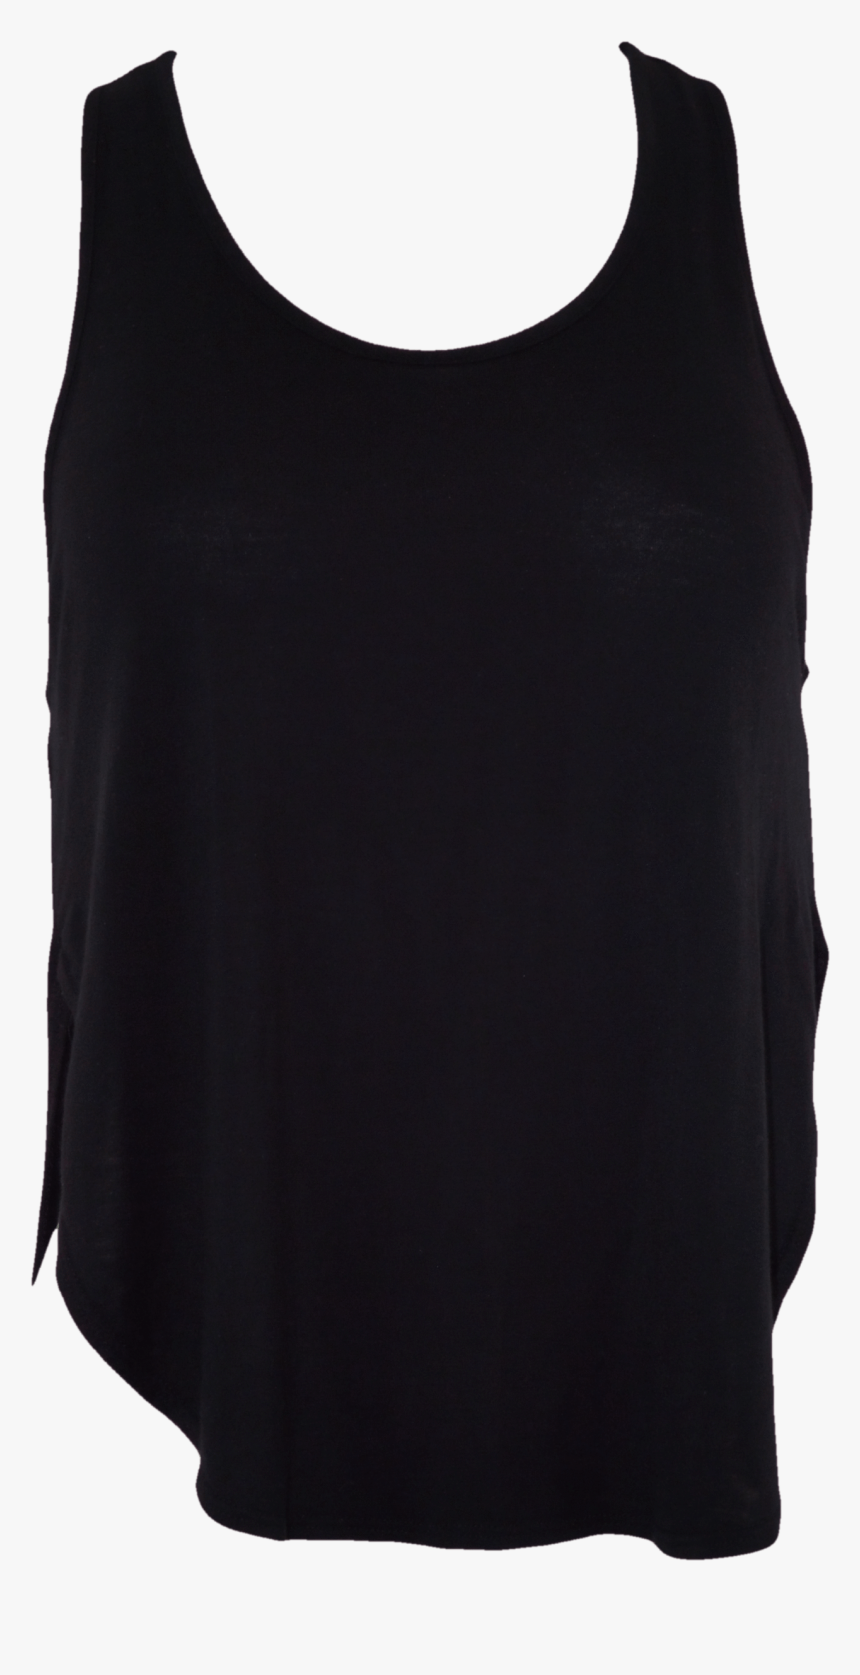 Black Tank Top Png - Active Tank, Transparent Png, Free Download